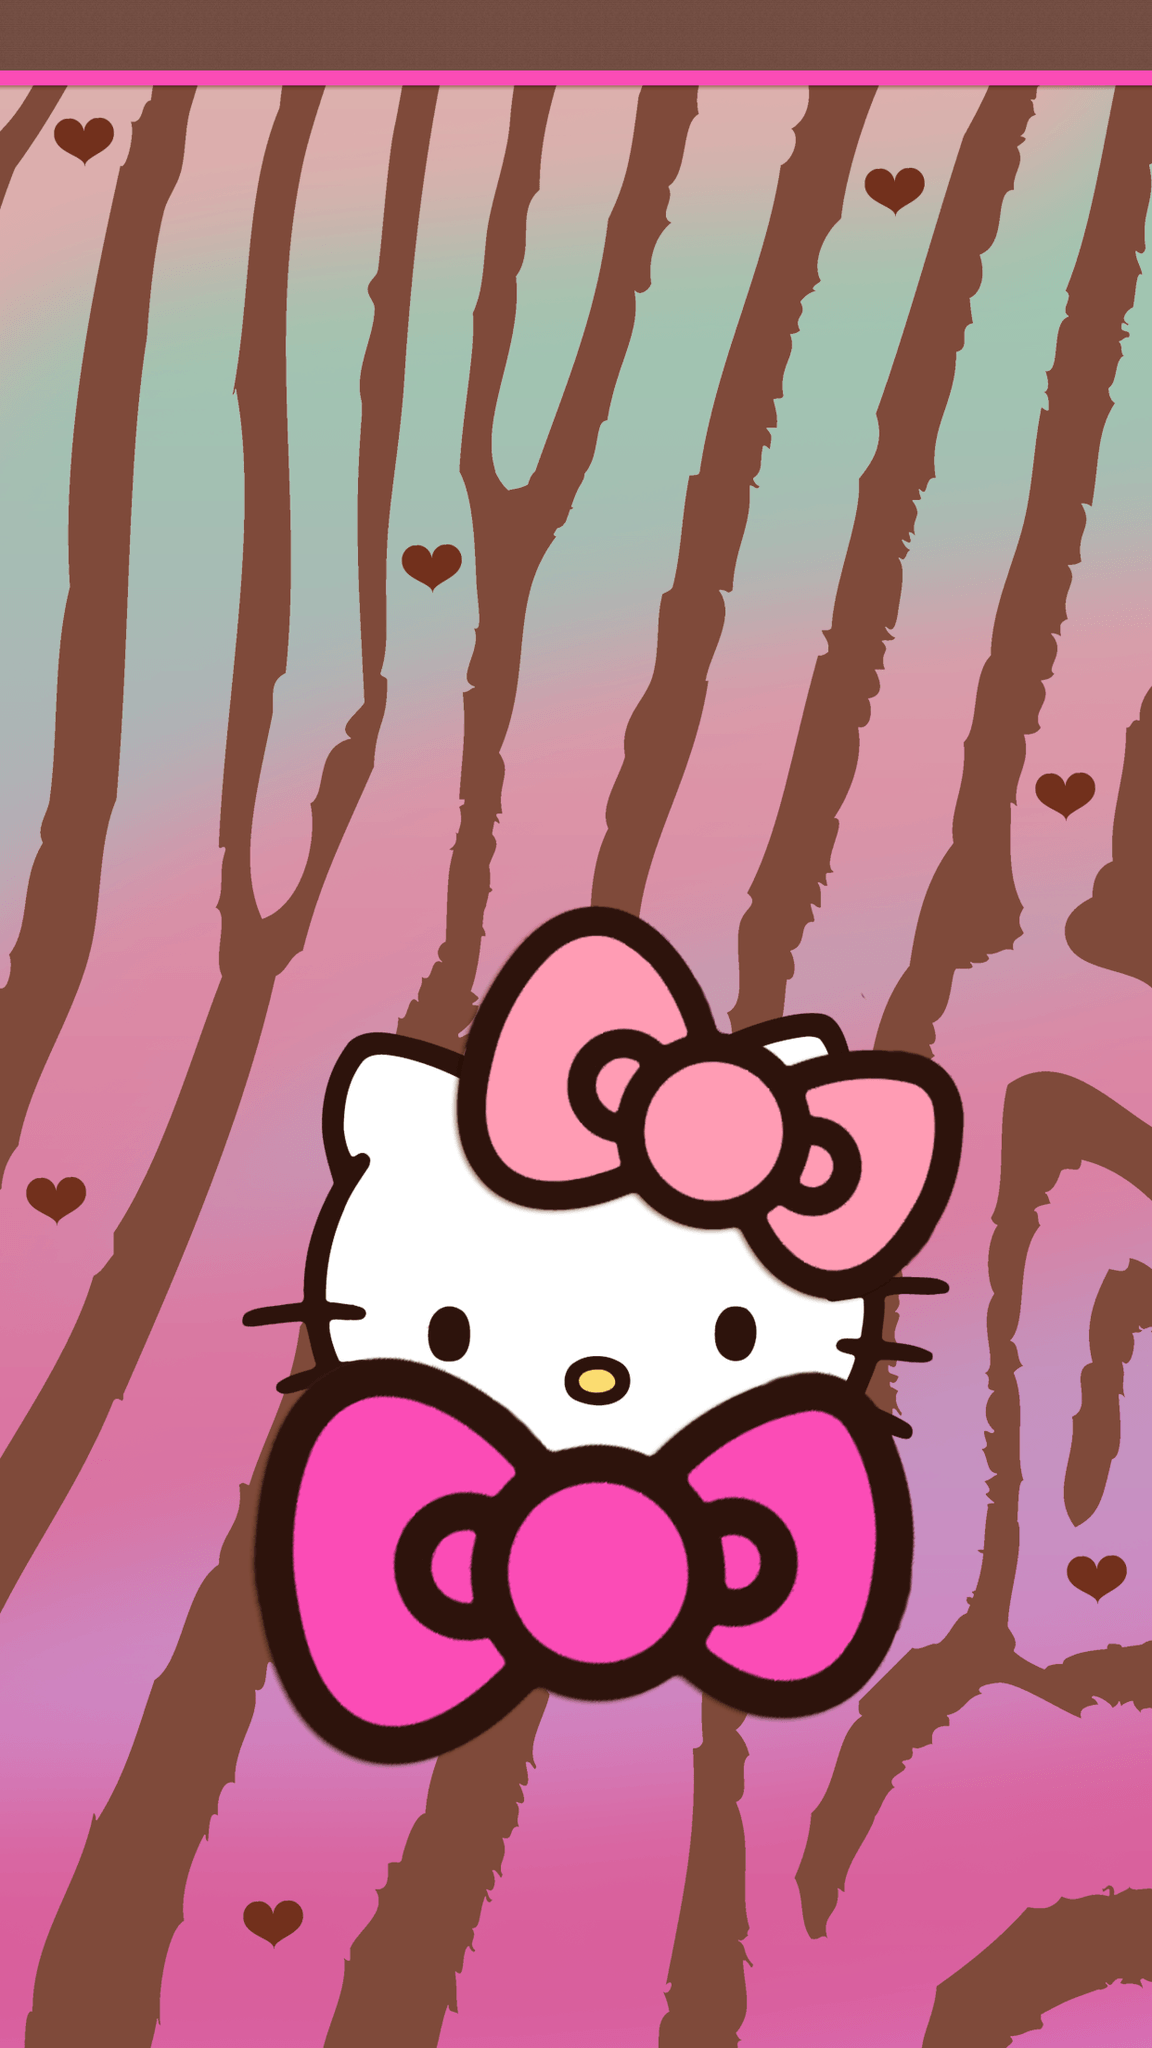 1152x2048 Pin by Xandra Funk on H.K. Wallpapers | Pinterest | Hello kitty ...